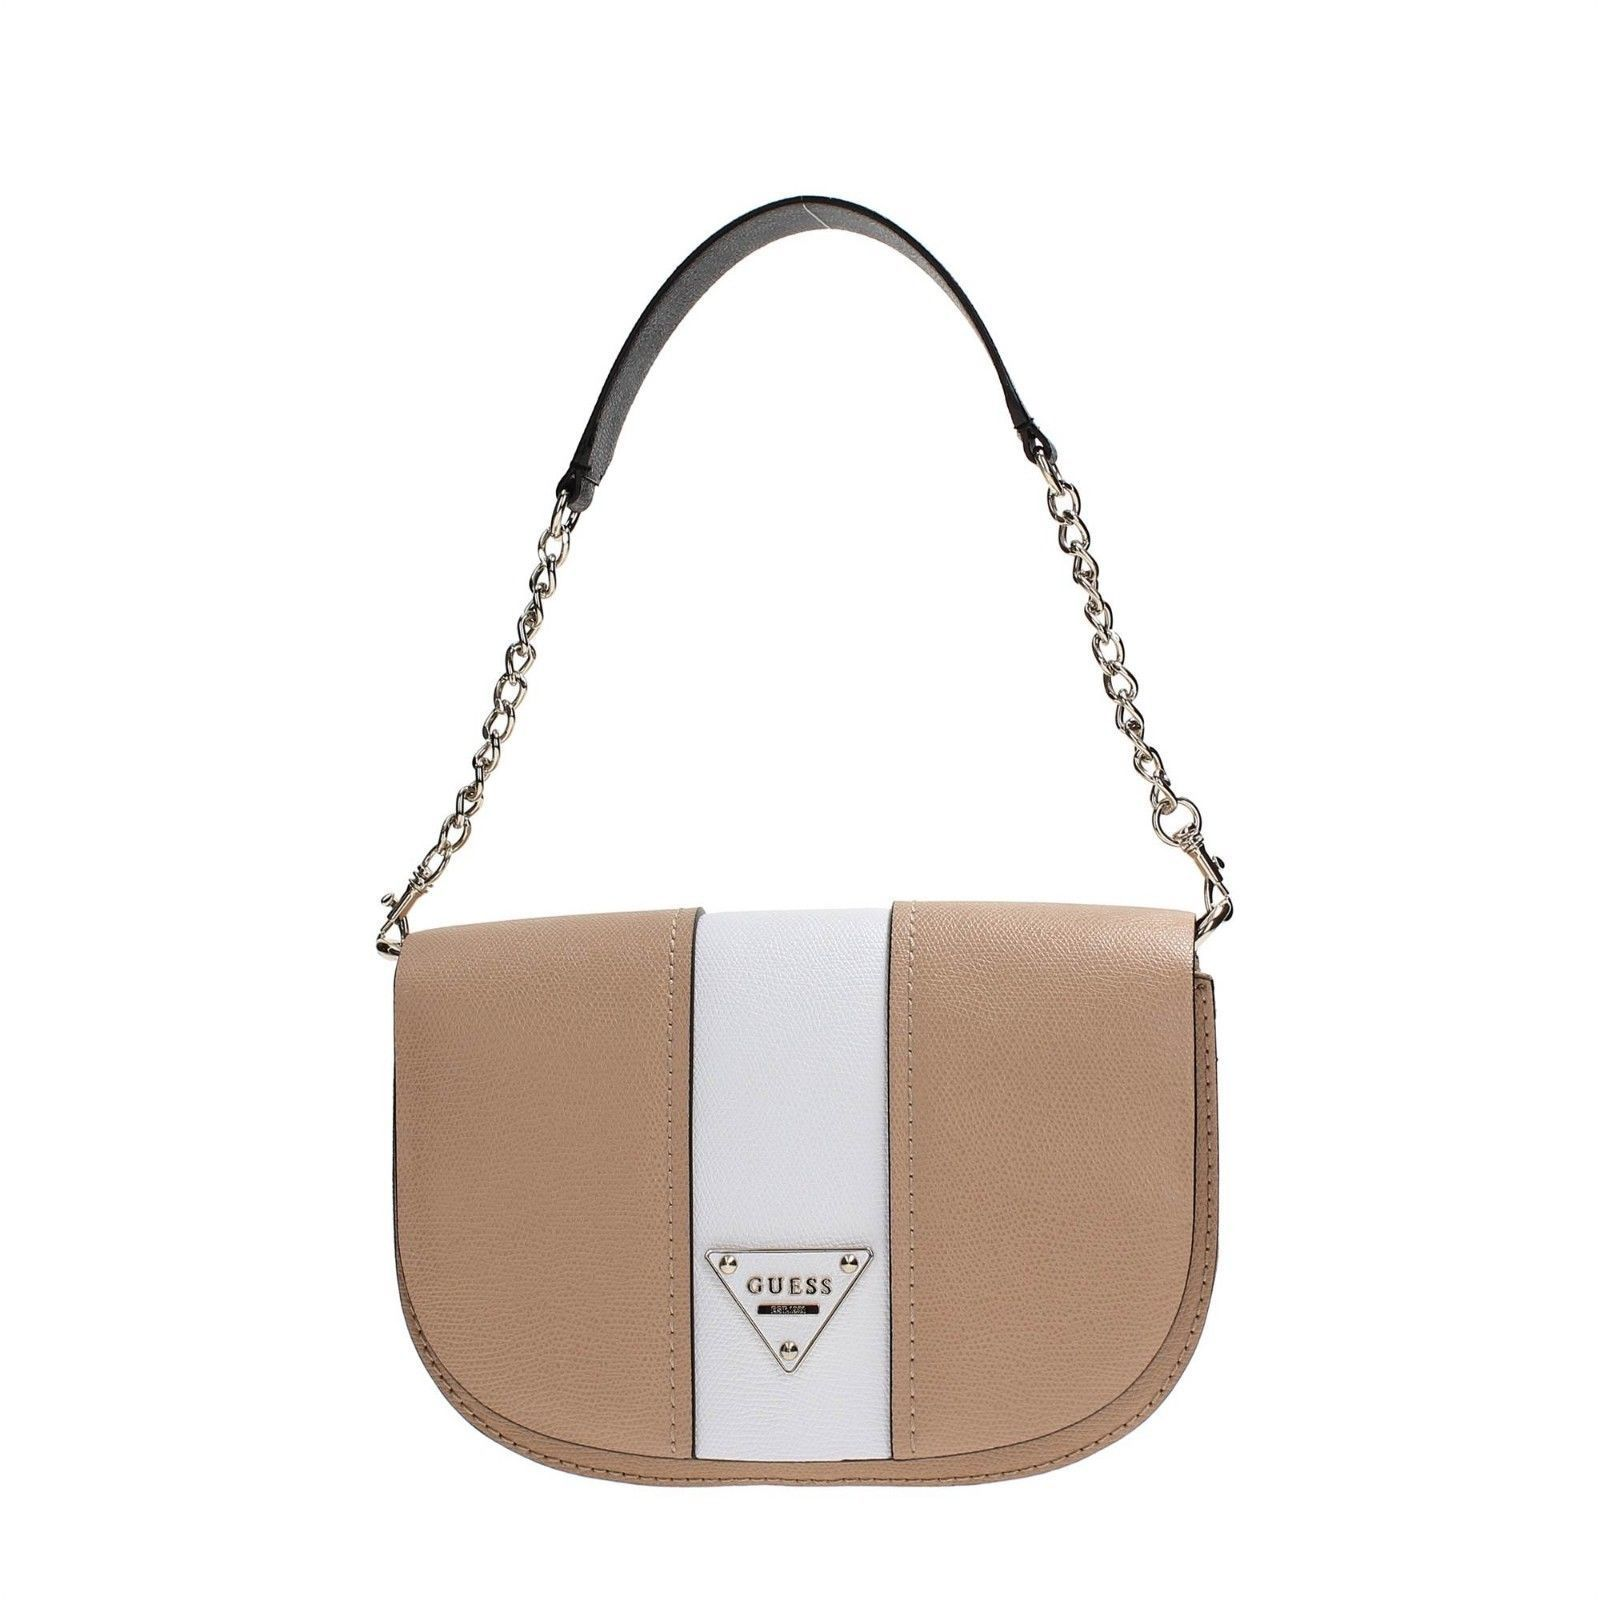 BORSA BORSE DONNA GUESS ORIGINAL COOPER VG634221 BAG ECO PELLE A/I 2016/17 NEW